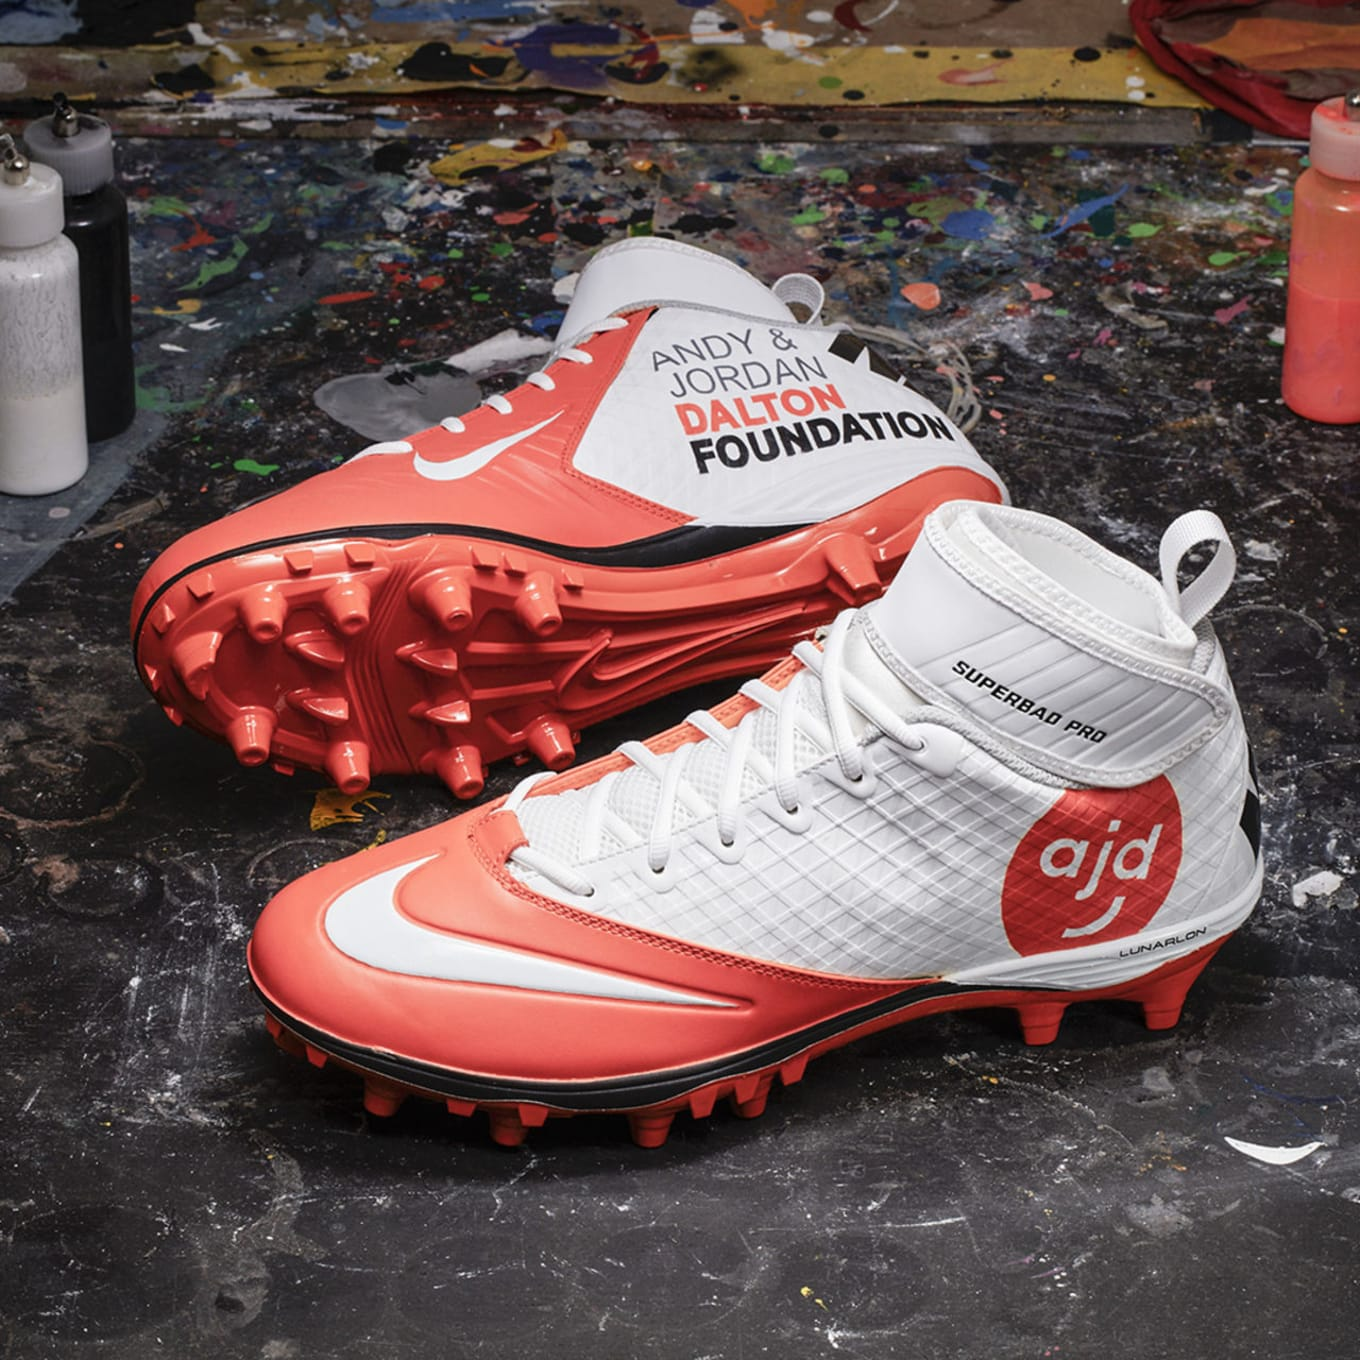 new product b43d3 079da NFL Cause Custom Cleats   Sole Collector